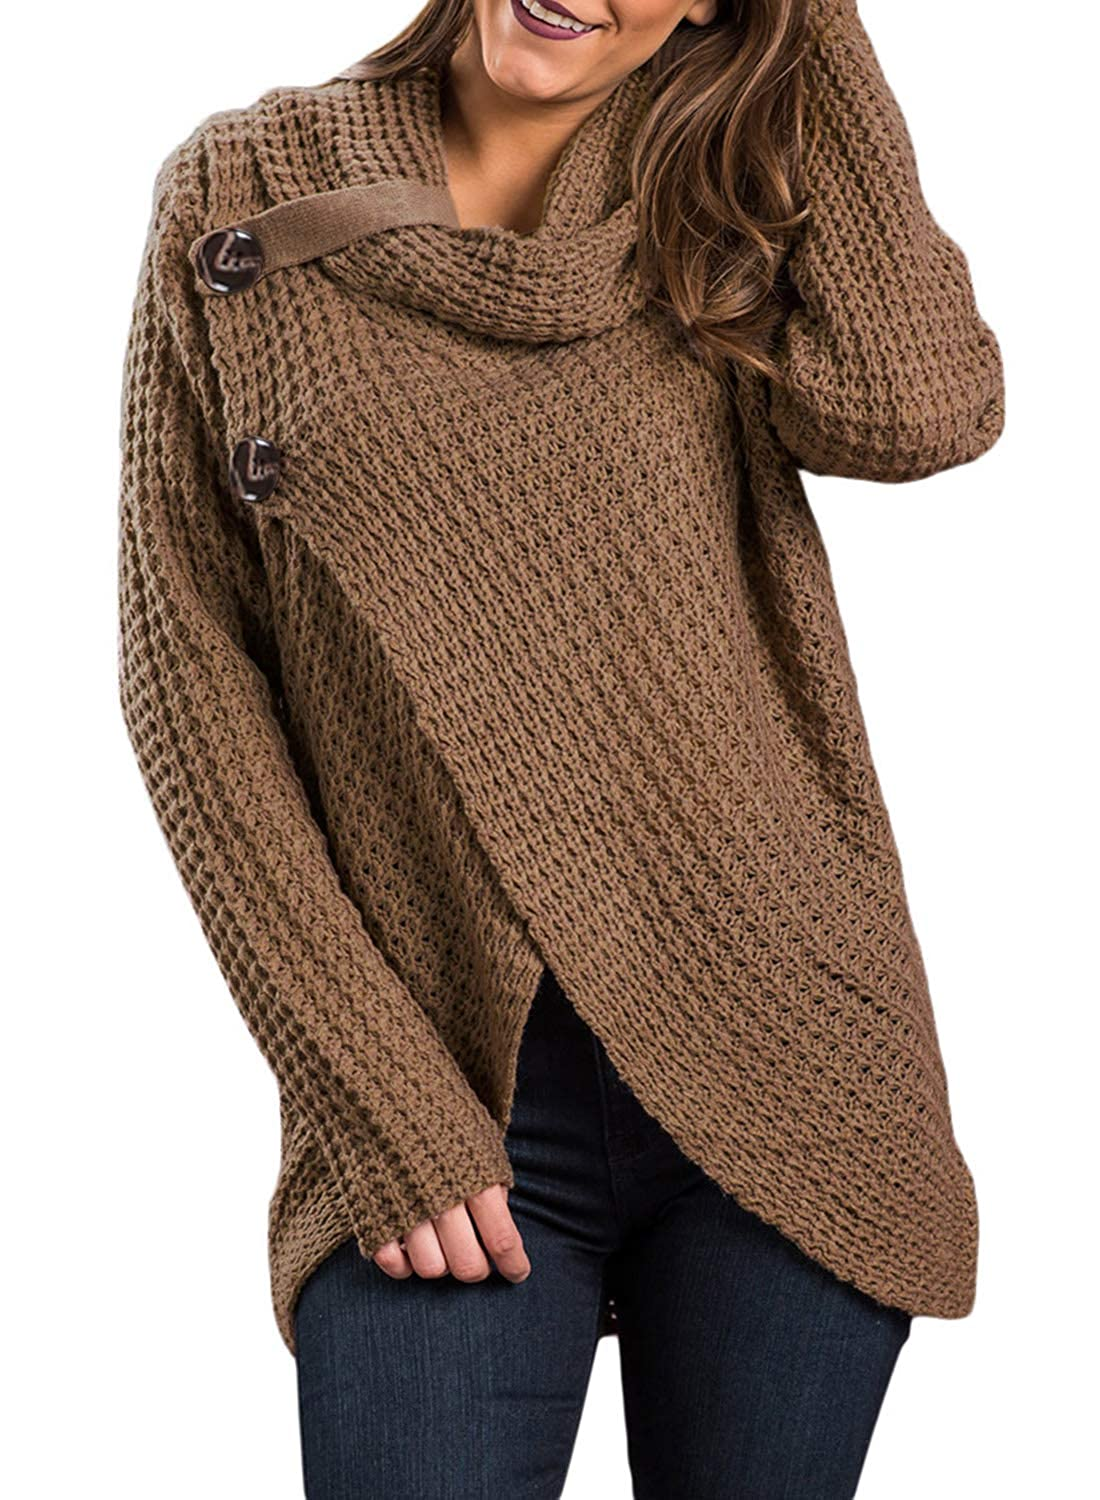 FIYOTE Womens Cowl Neck Chunky Cable Knit Asymmetric Hem Wrap Pullover Sweater with Button Details